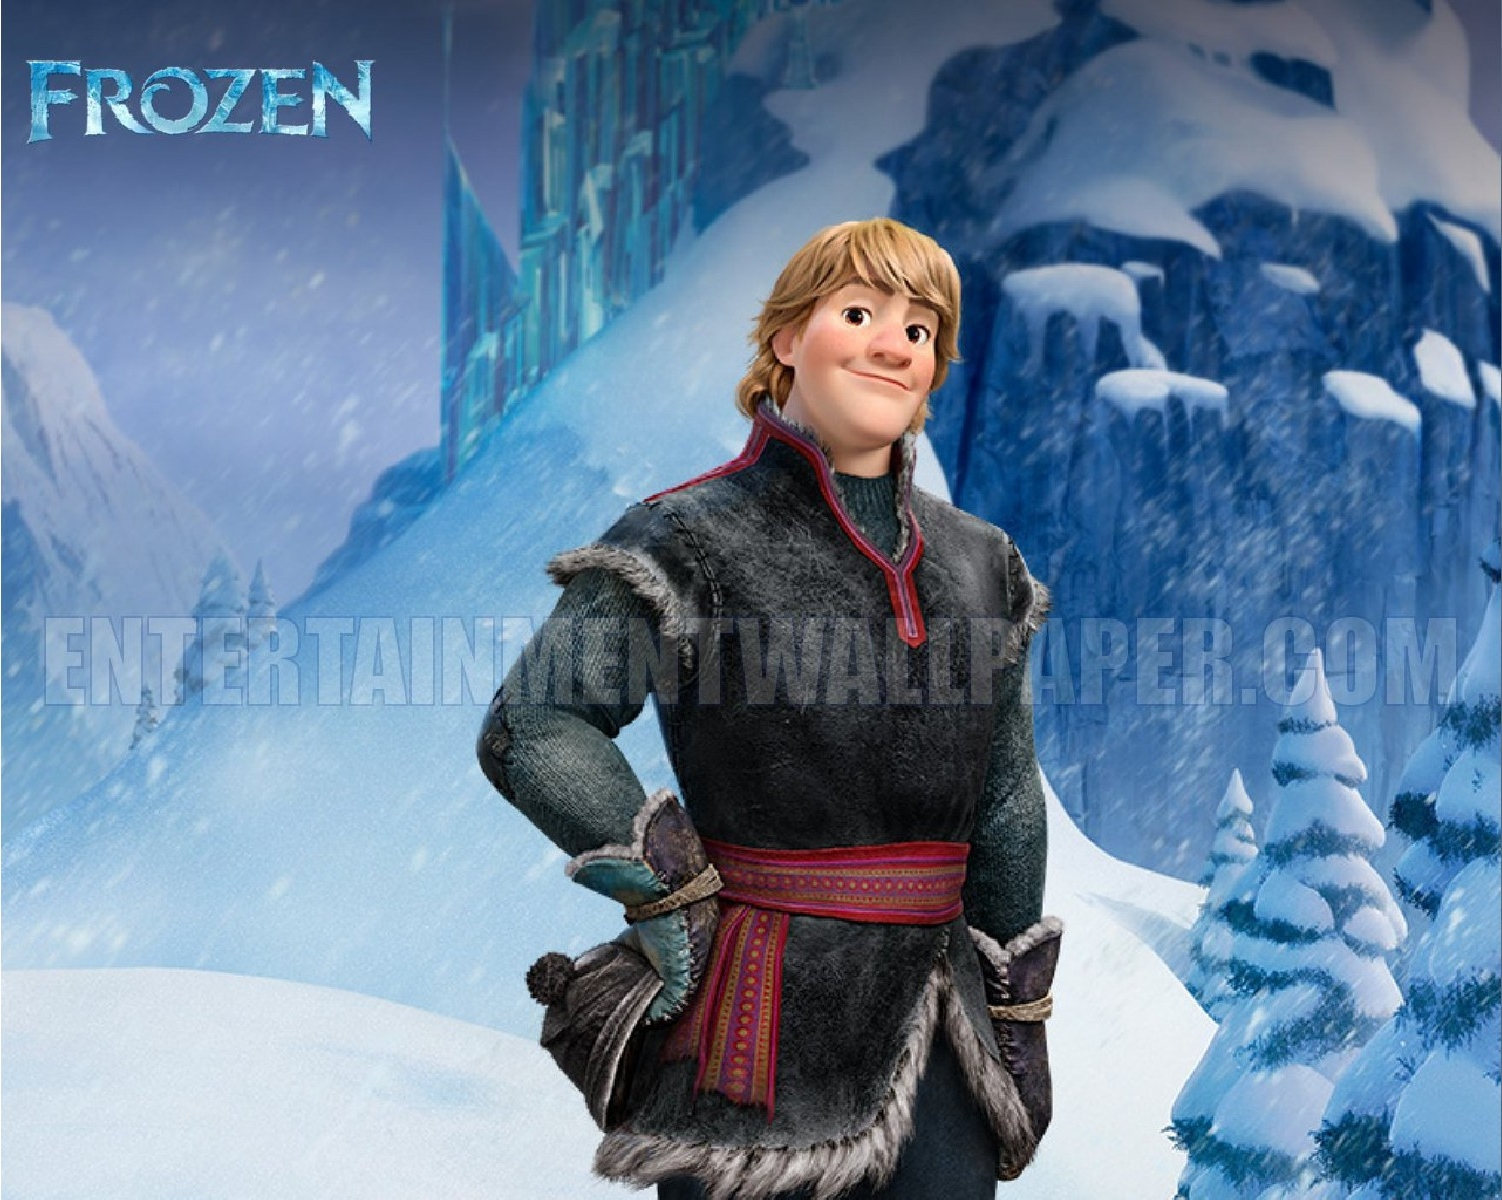 kristoff frozen photo - photo #20